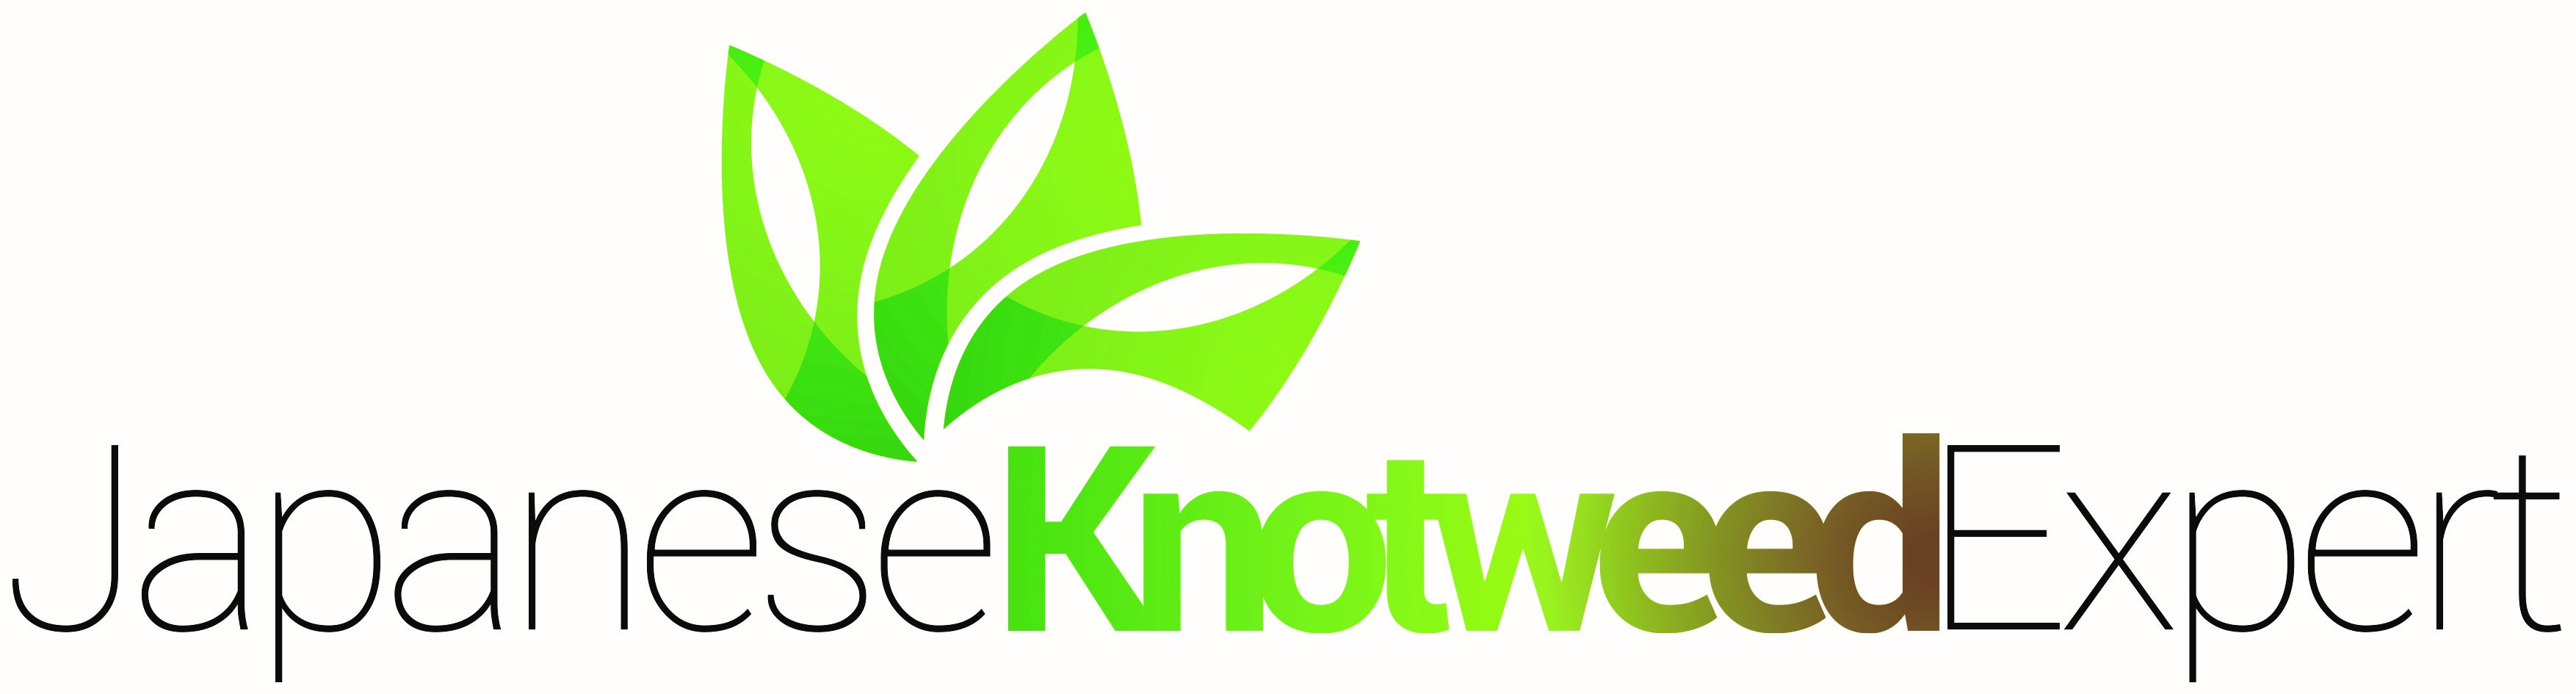 Japanese Knotweed Expert – Japanese Knotweed Removal and Eradication